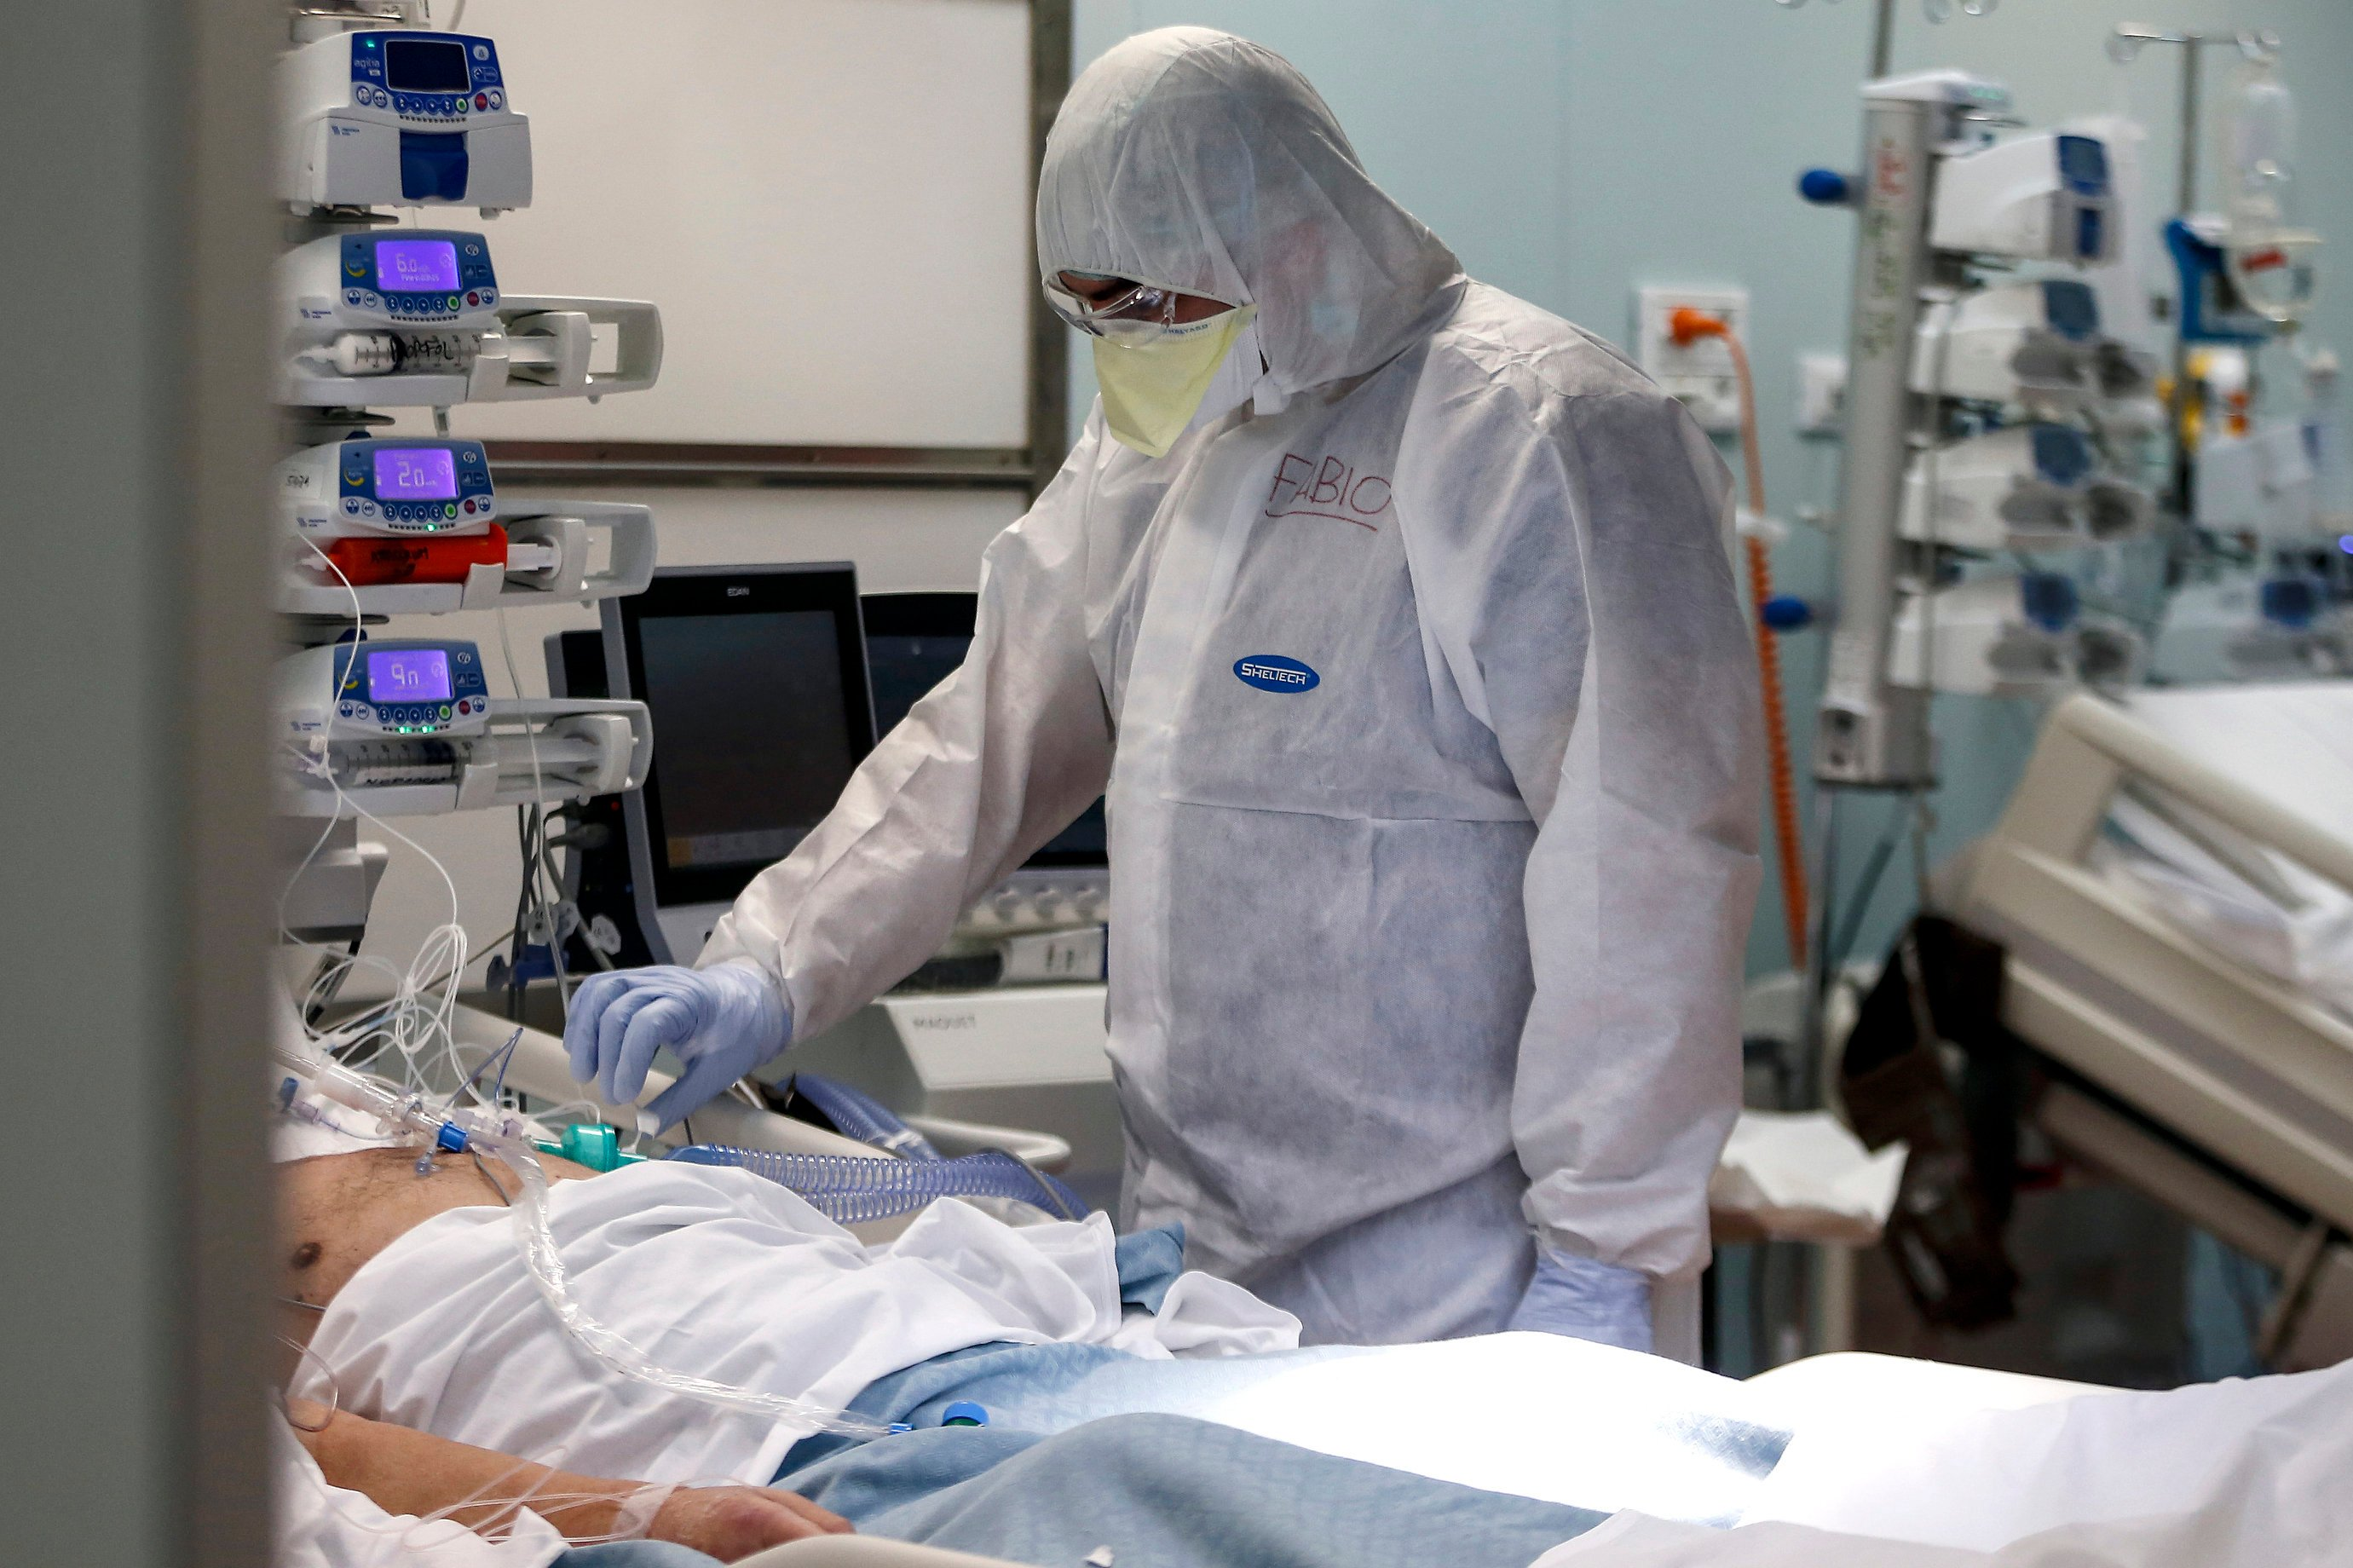 A medical staffer tends to a patient in the ICU unit of the COVID-19 hospital in Casalpalocco, near Rome, April 11, 2020. (AP Photo)